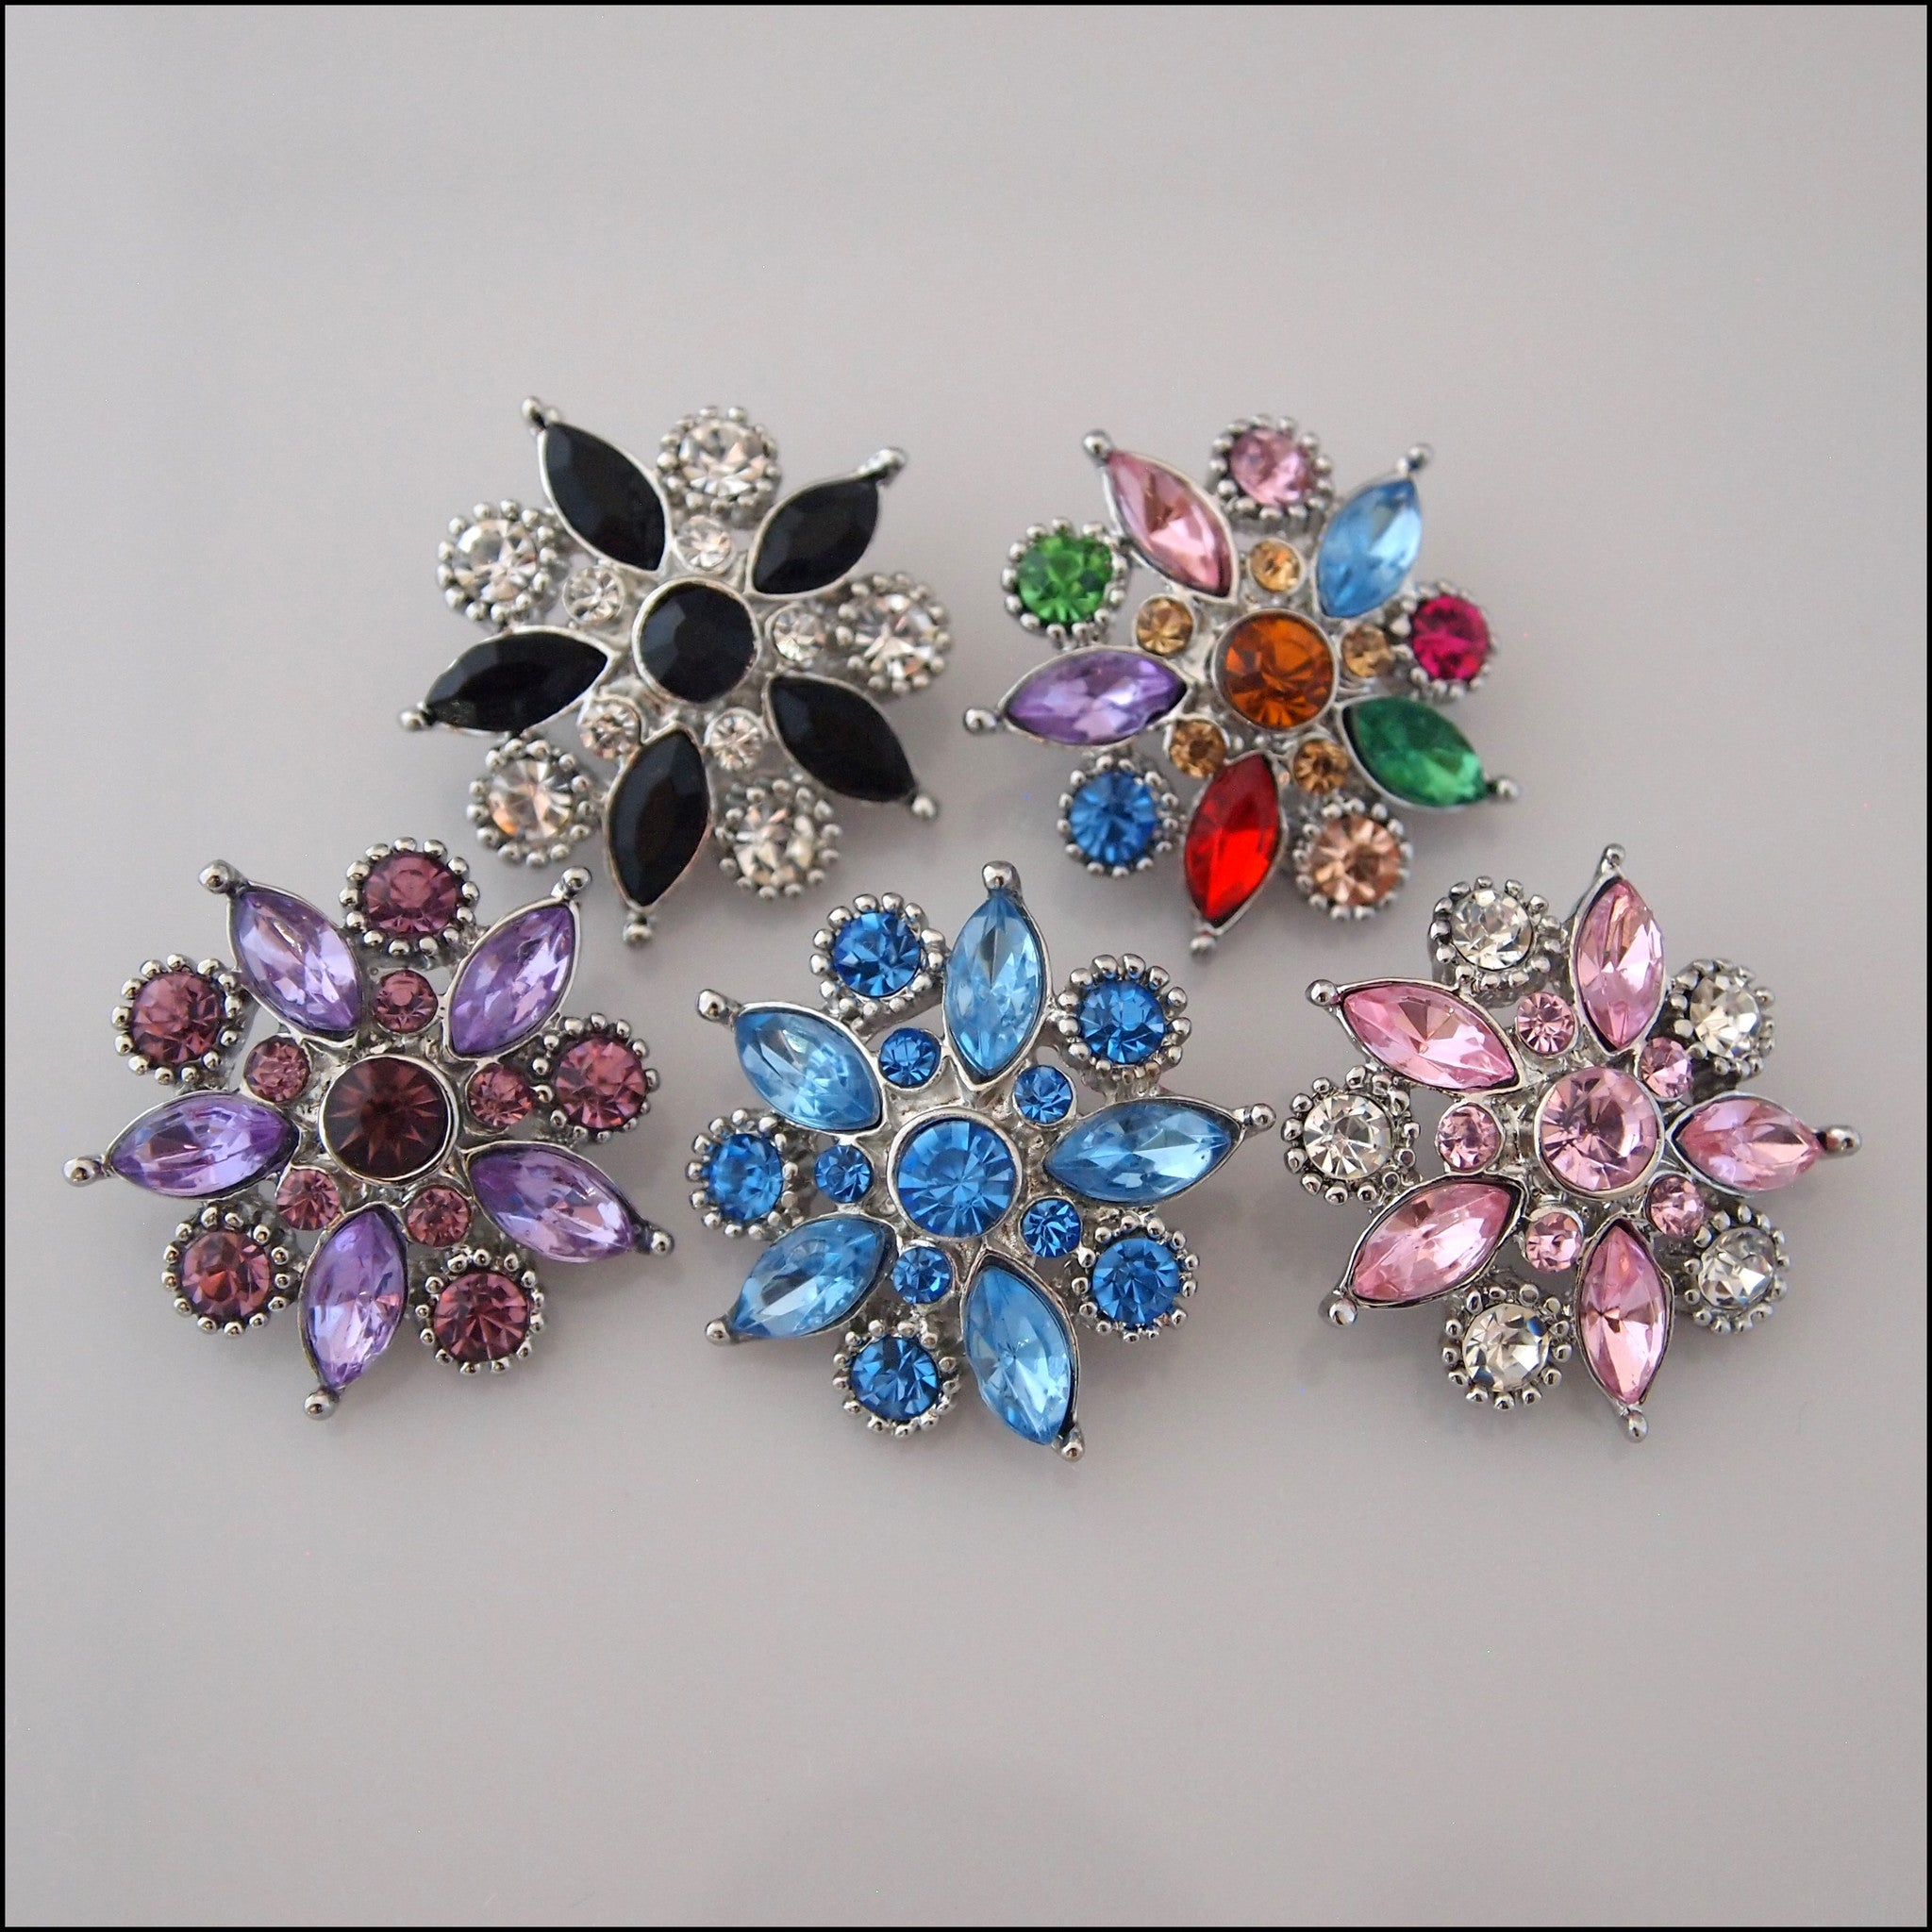 Deluxe Decorative Crystal Flower Snap Button - Find Something Special